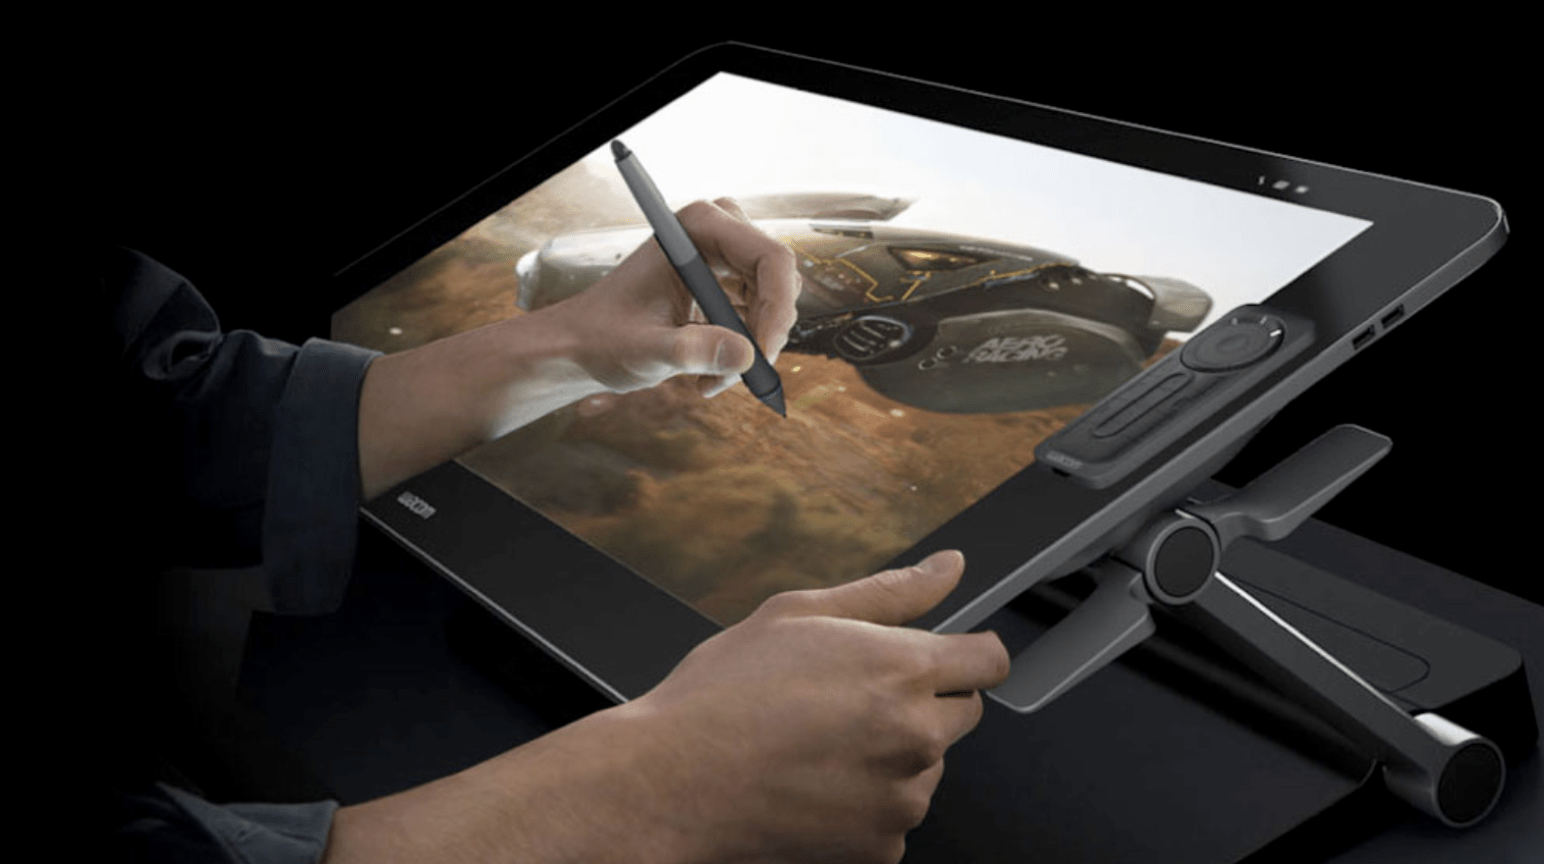 Wacom Cintiq 27HD Drawing as a product designer the design sketchbook